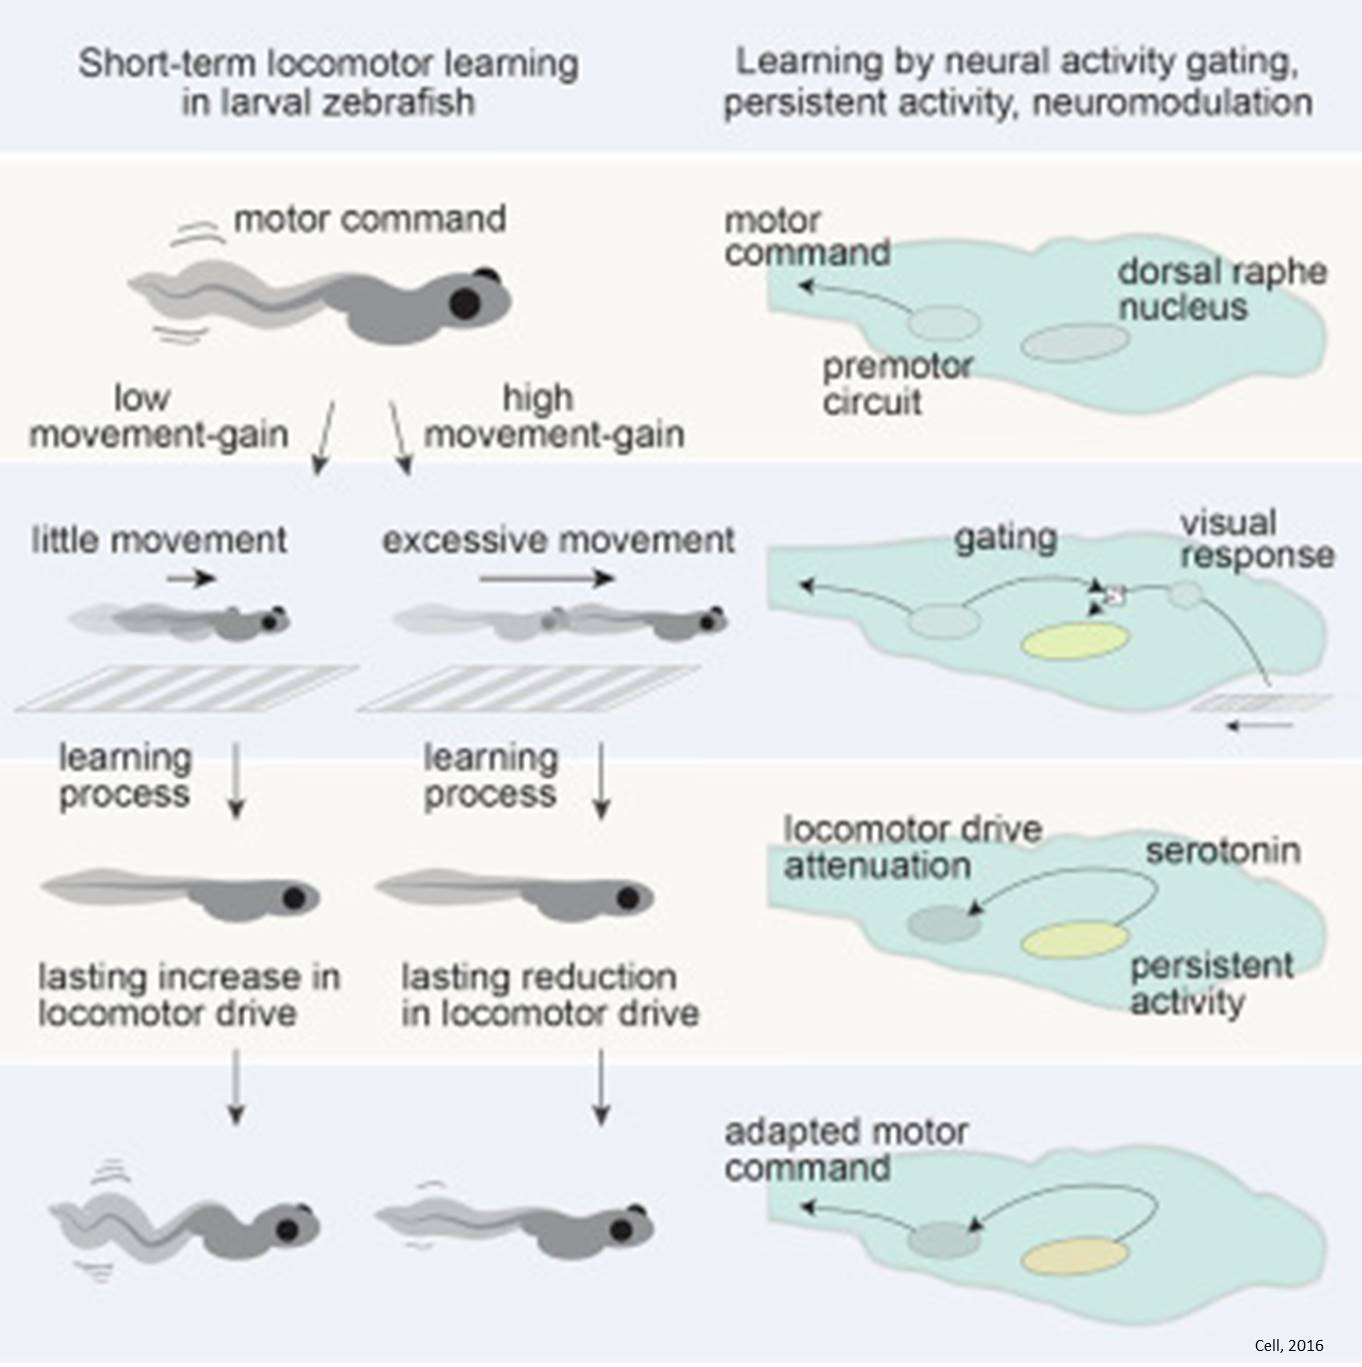 Serotonergic system involved in short-term locomotor learning!